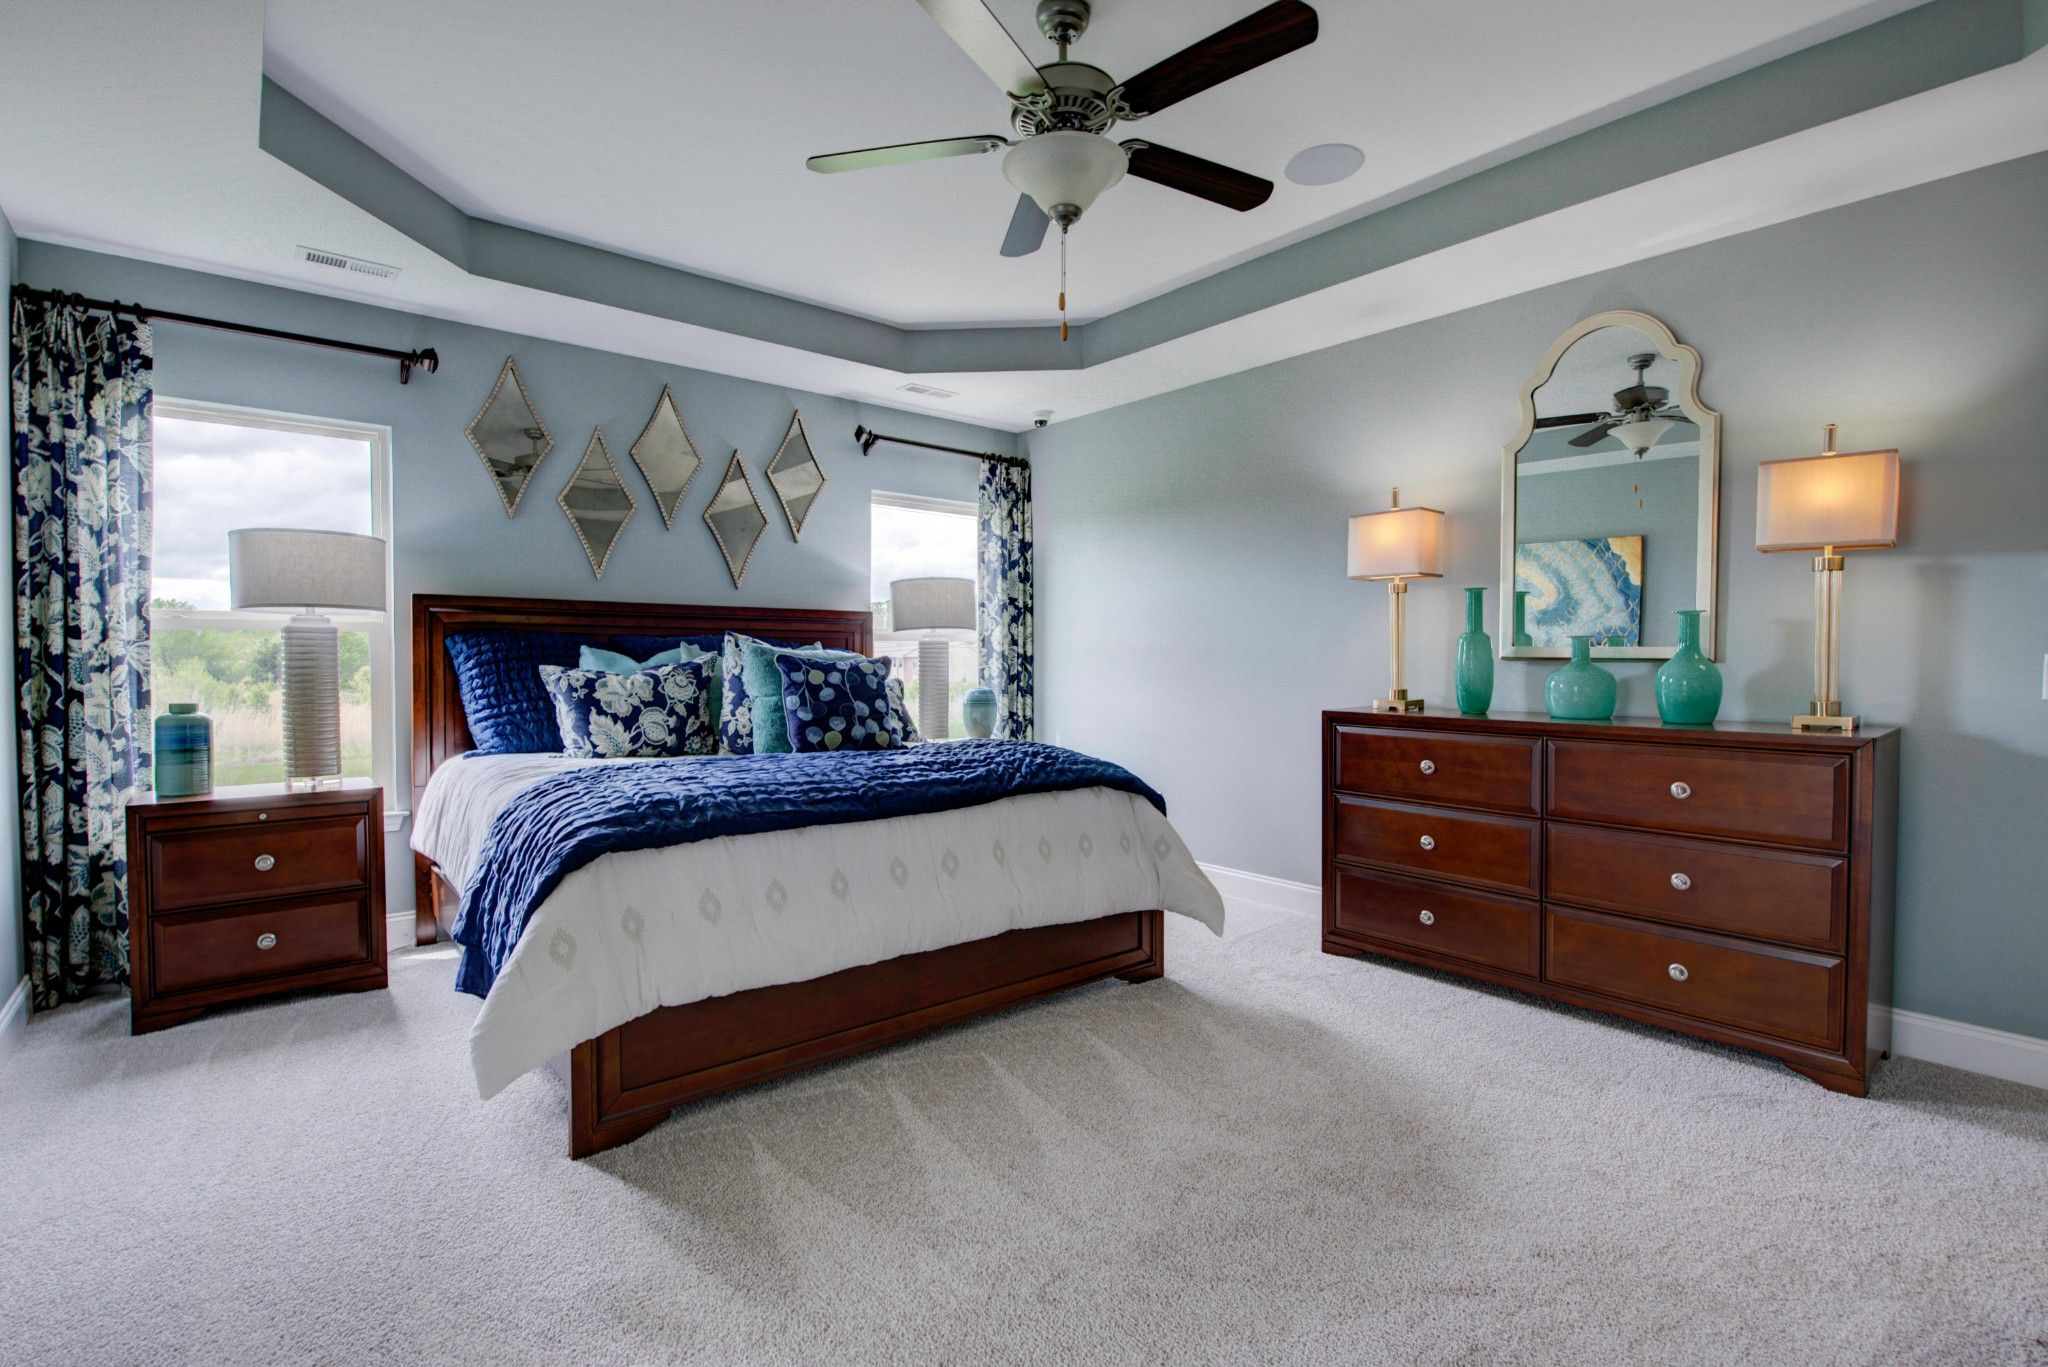 Bedroom featured in The Eliot By Goodall Homes in Owensboro, KY